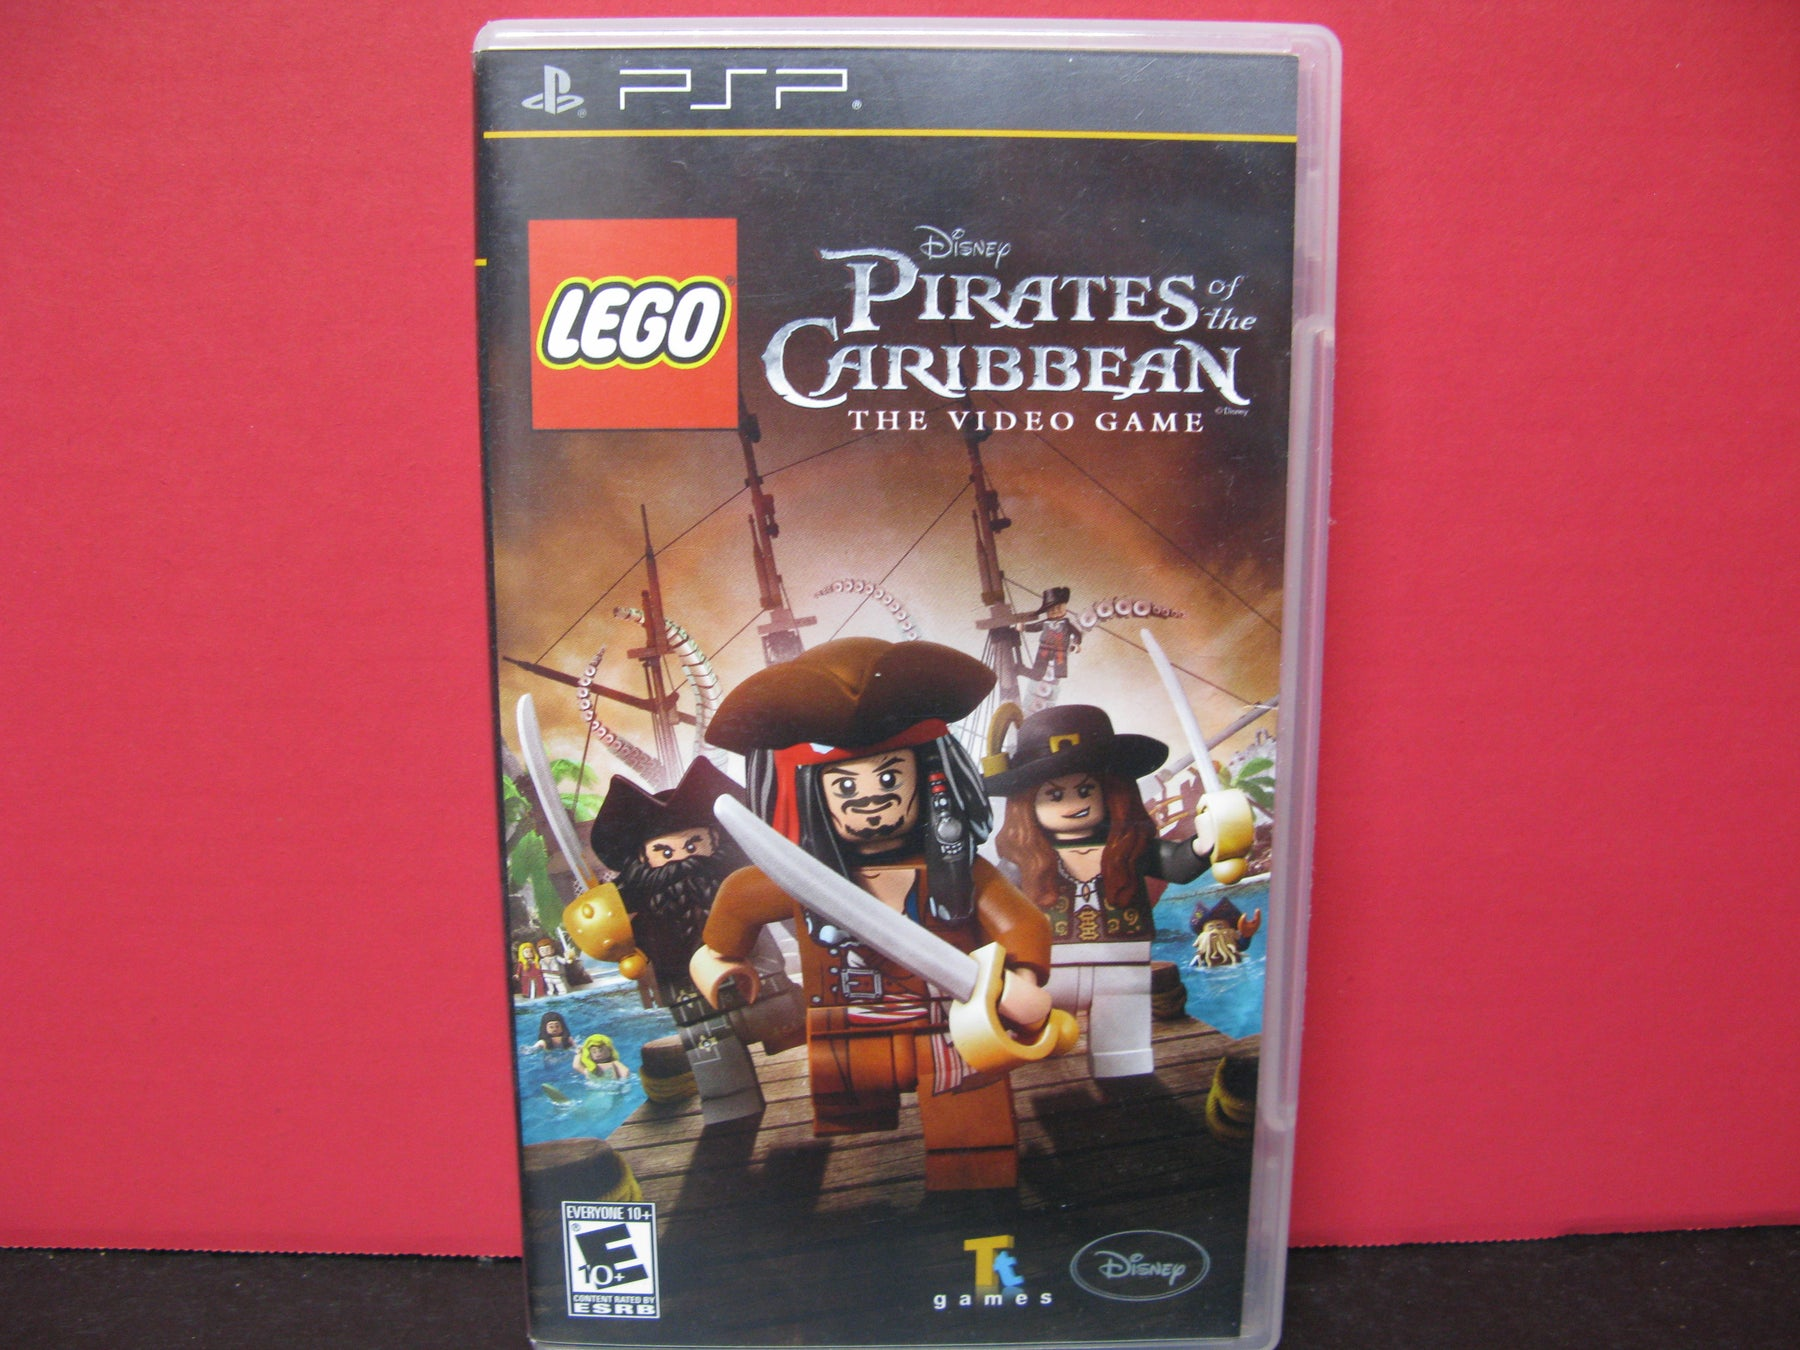 PSP Lego Disney Pirates of the Caribbean The Video Game